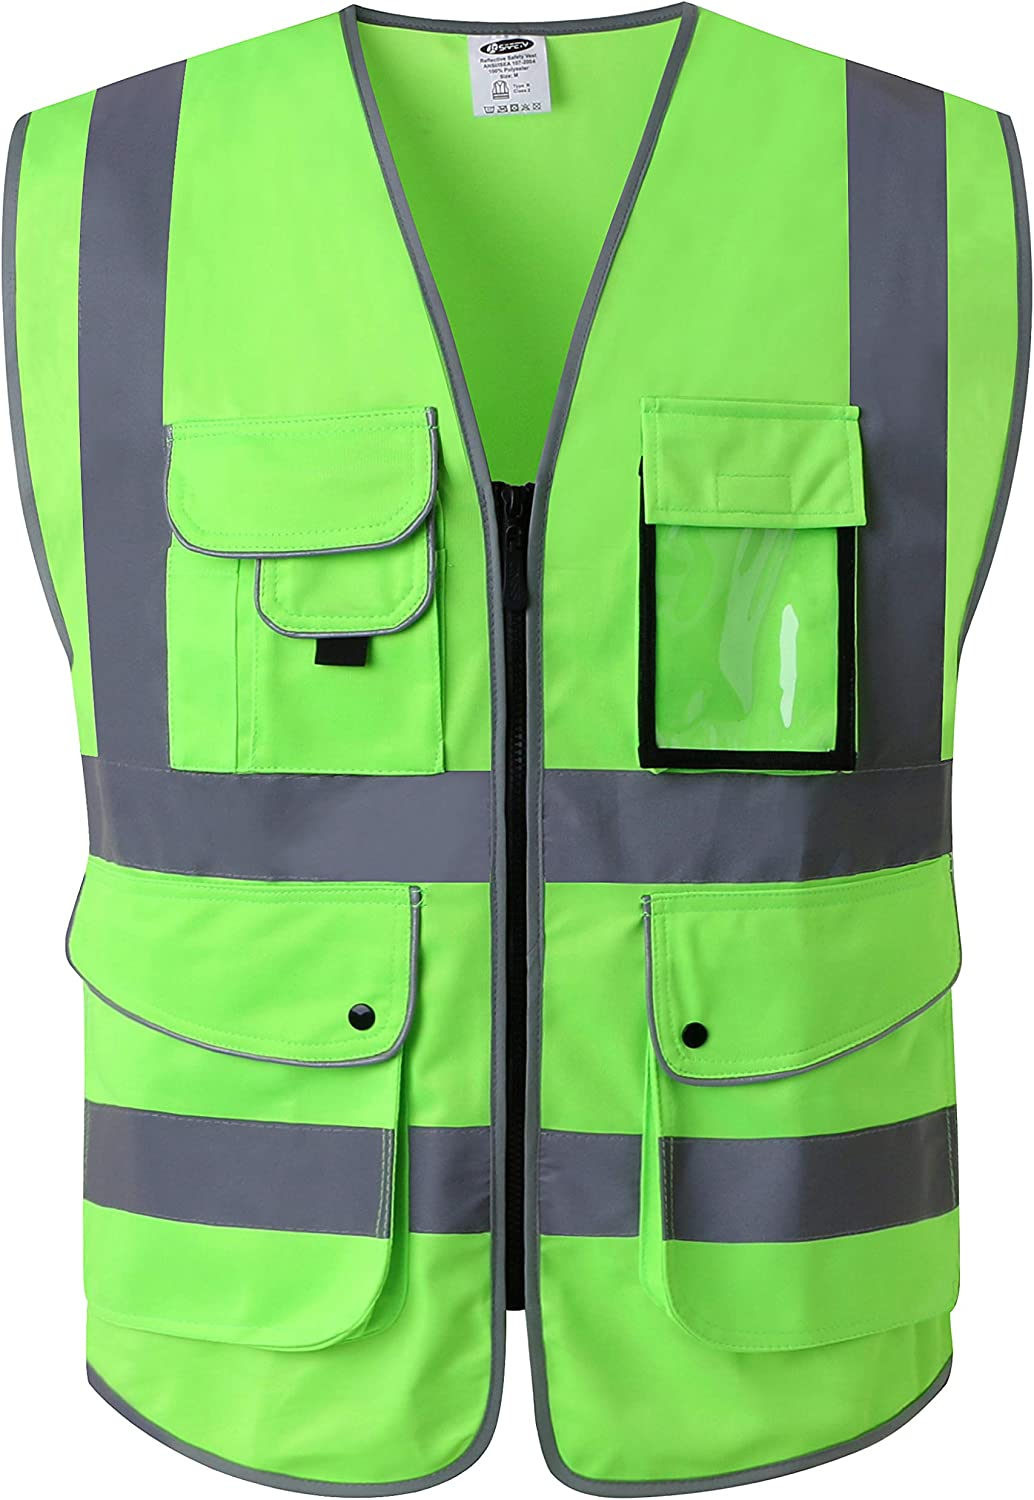 JKSafety 9 Pockets Class 2 High Visibility Zipper Front Safety Vest With Reflective Strips, Meets ANSI/ISEA Standards (Medium, Green)